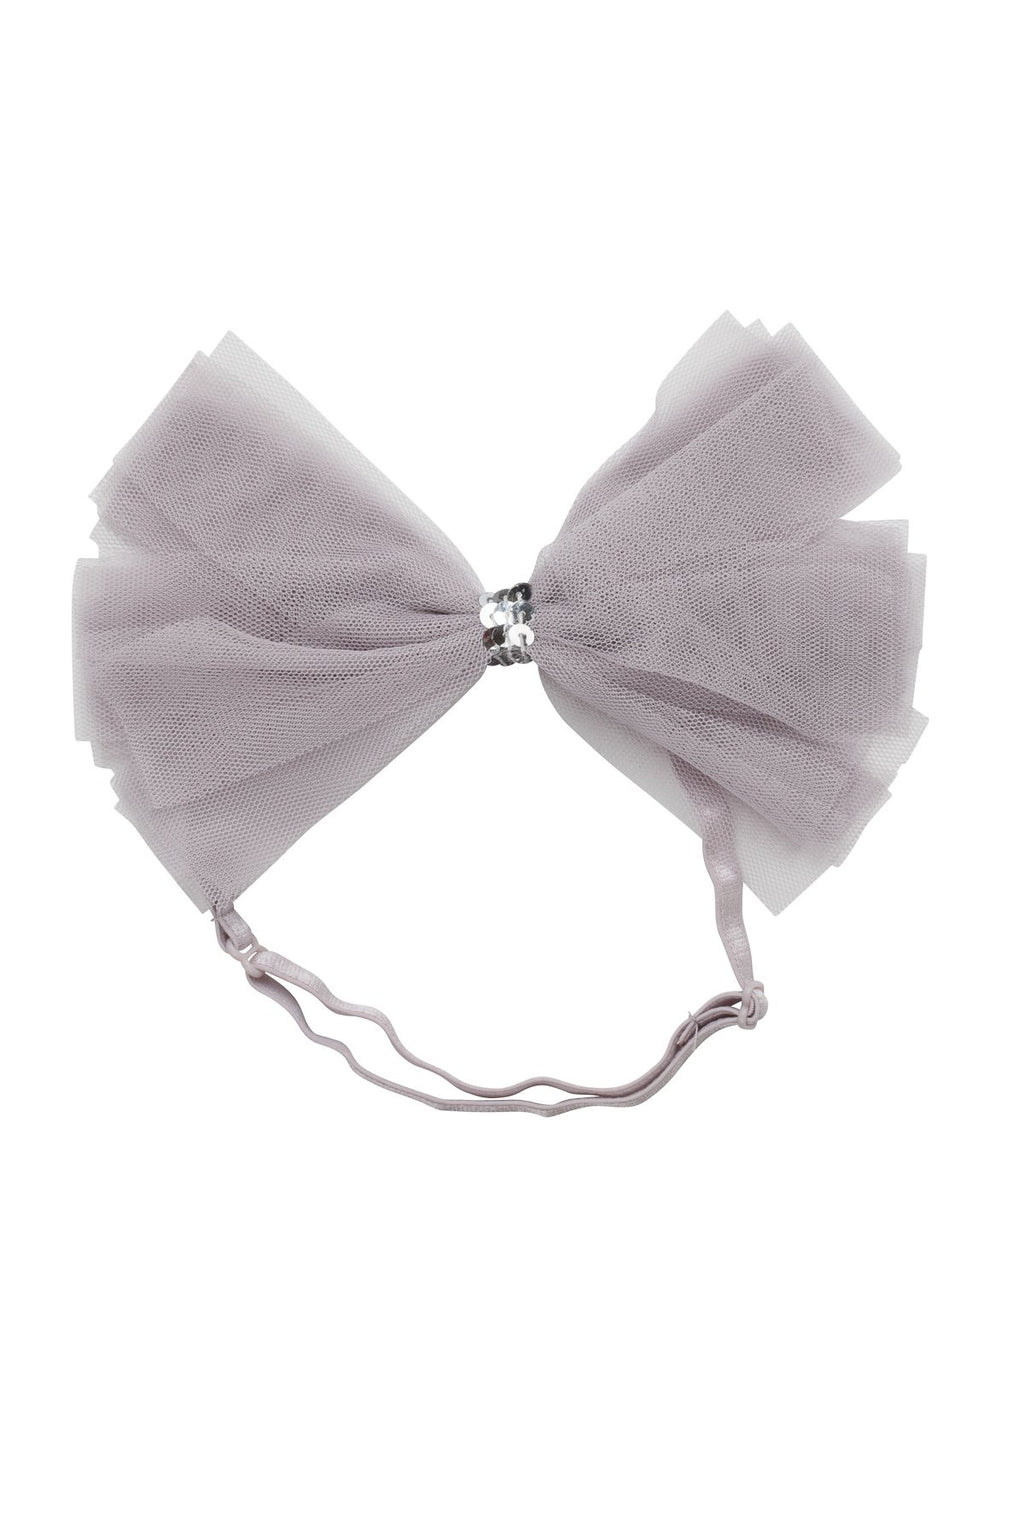 Soft Tulle Strips CLIP + WRAP - Lilac - PROJECT 6, modest fashion